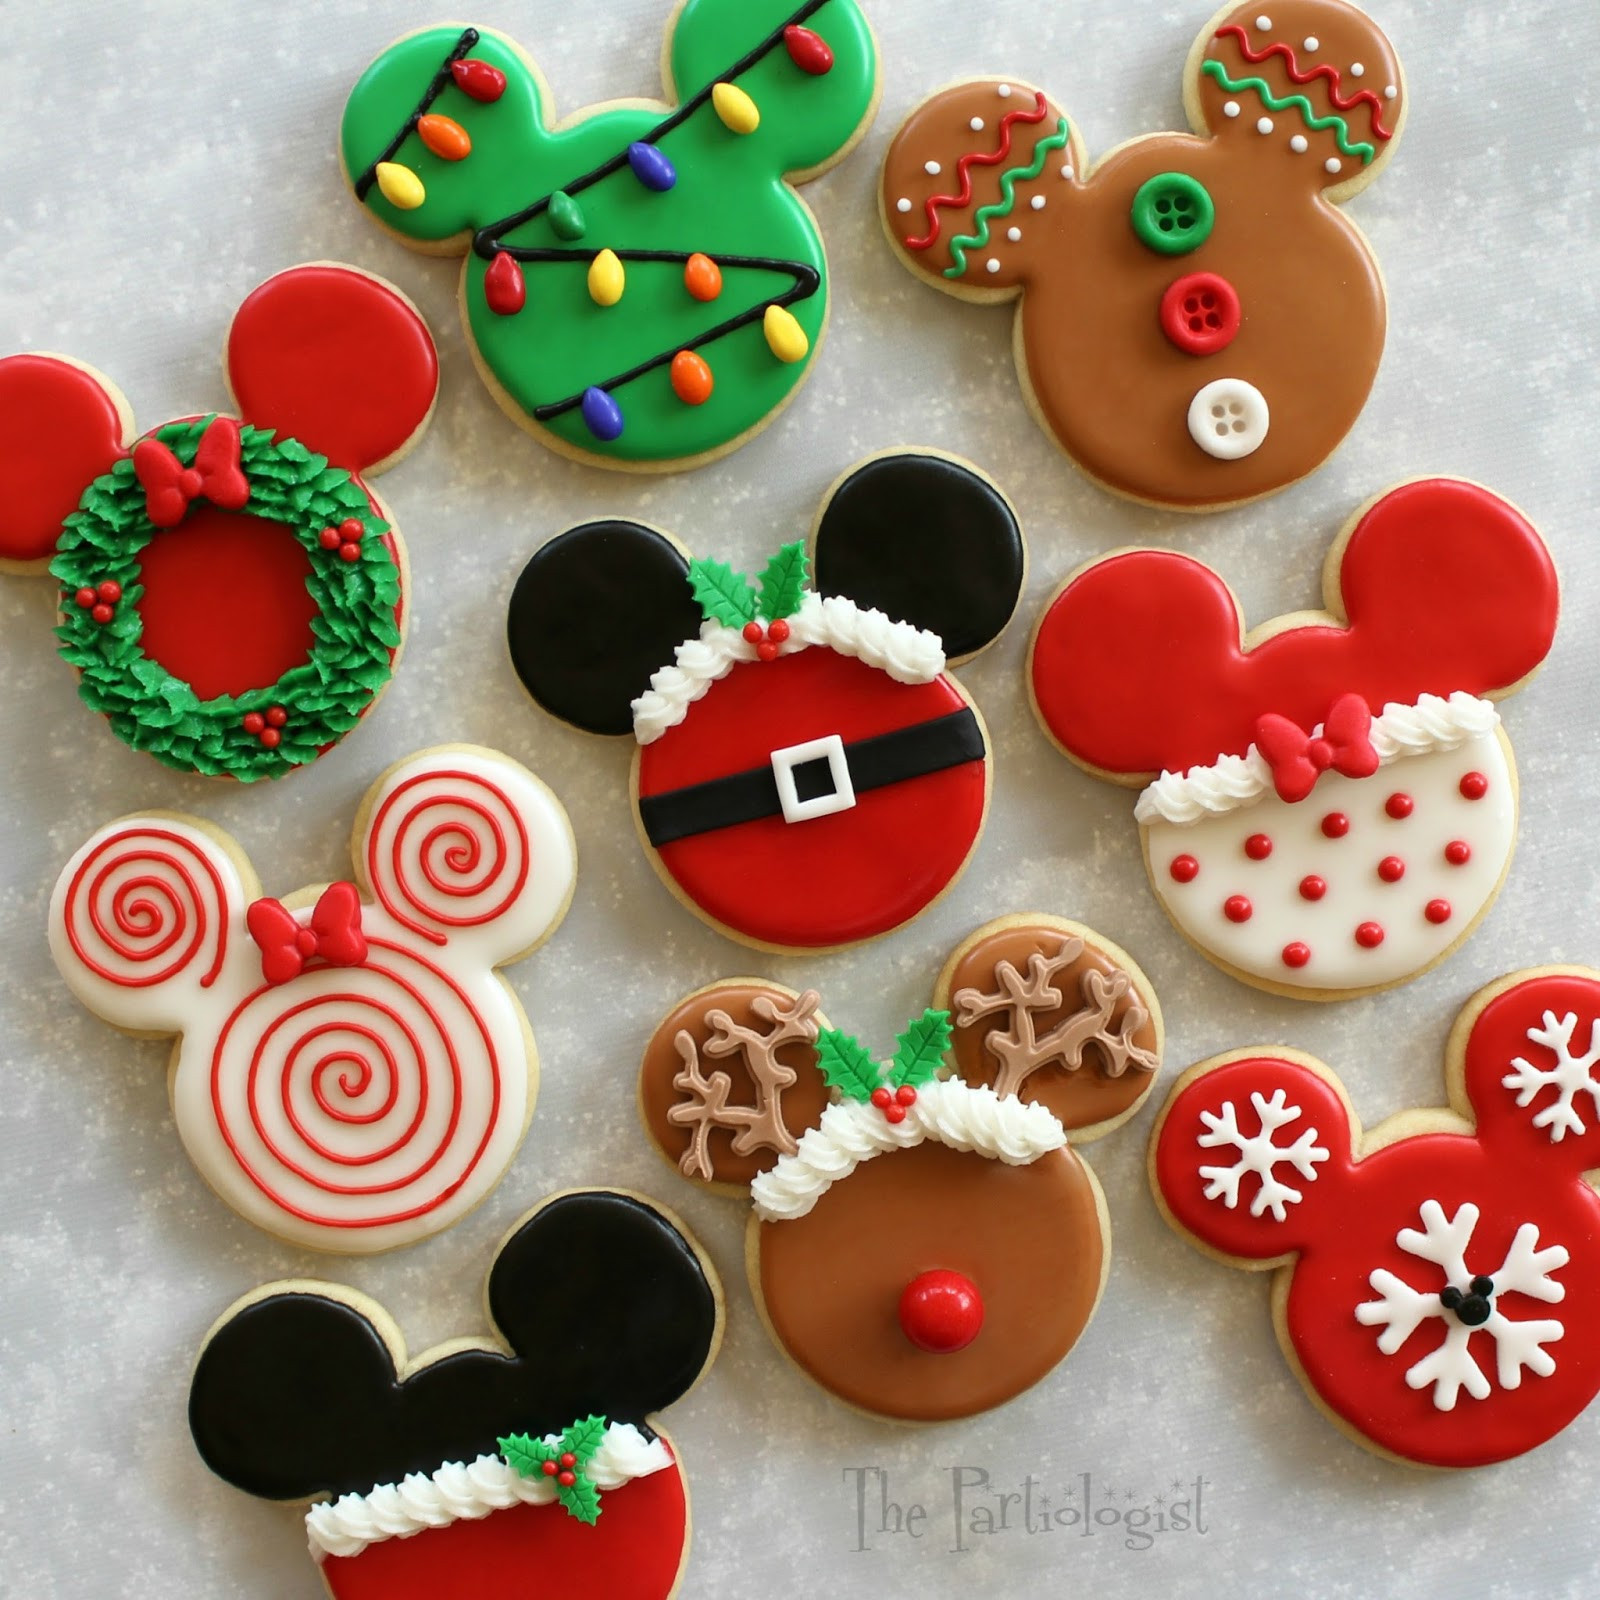 Iced Christmas Cookies  The Partiologist Disney Themed Christmas Cookies